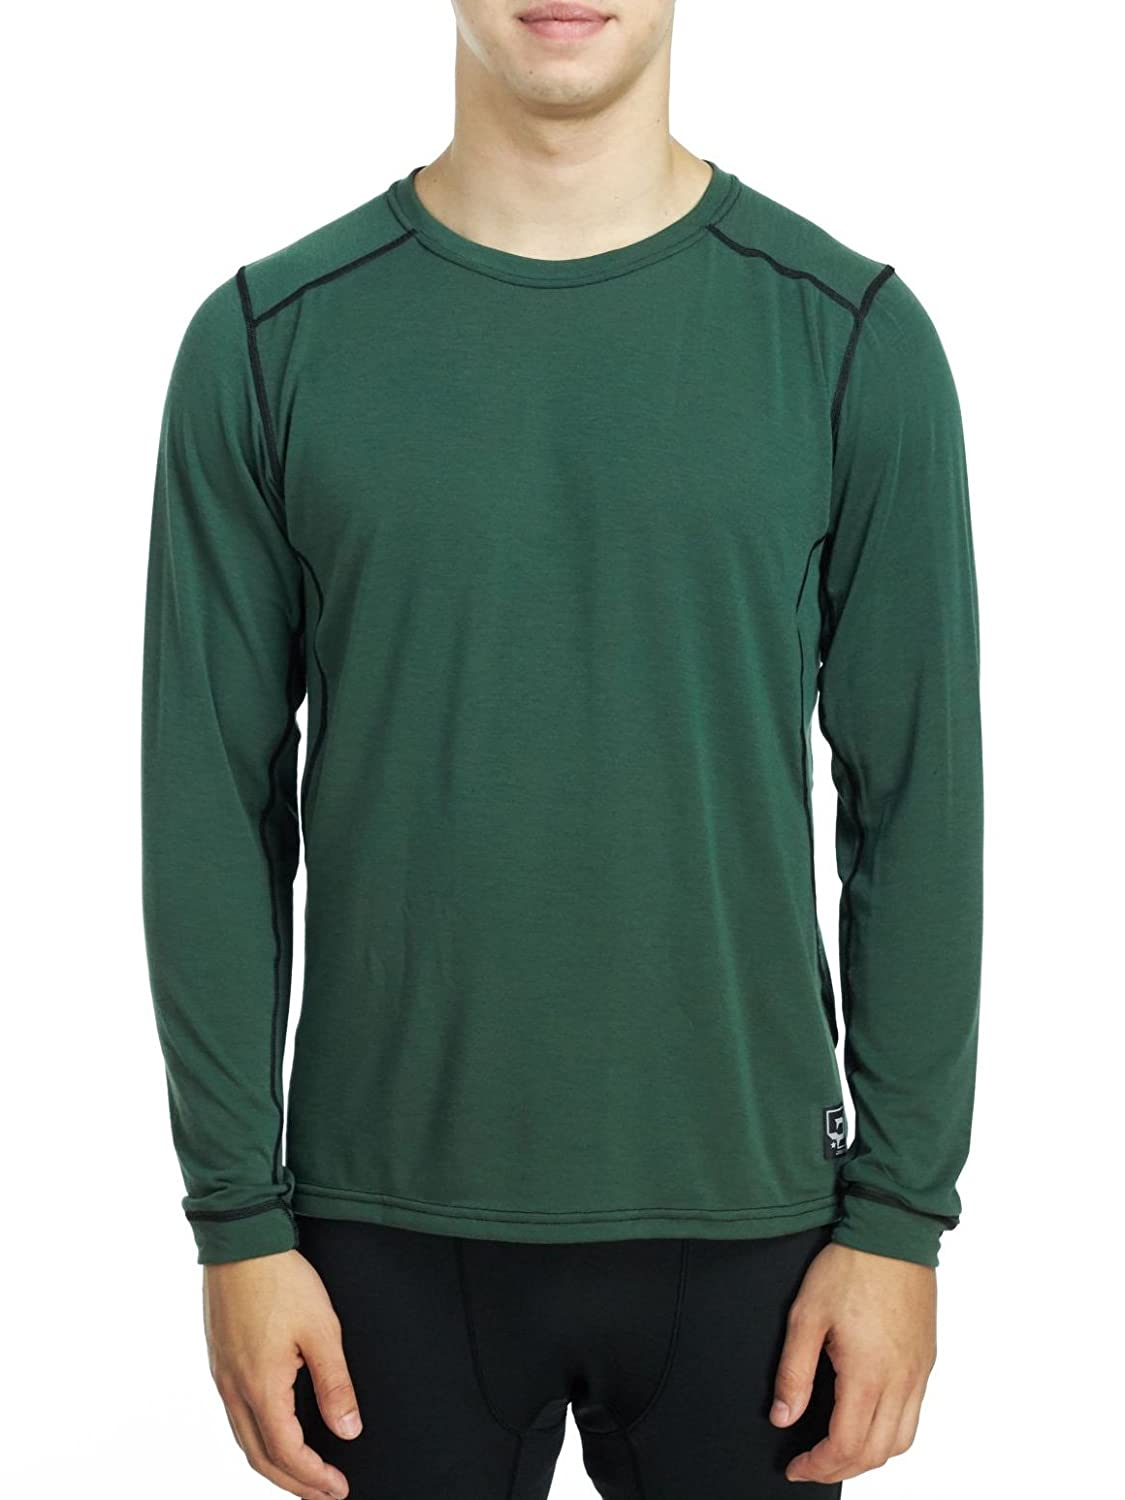 AYG PolarMax Herren Micro H1 LS Crew 2015 (Grau Heather, X-Large)